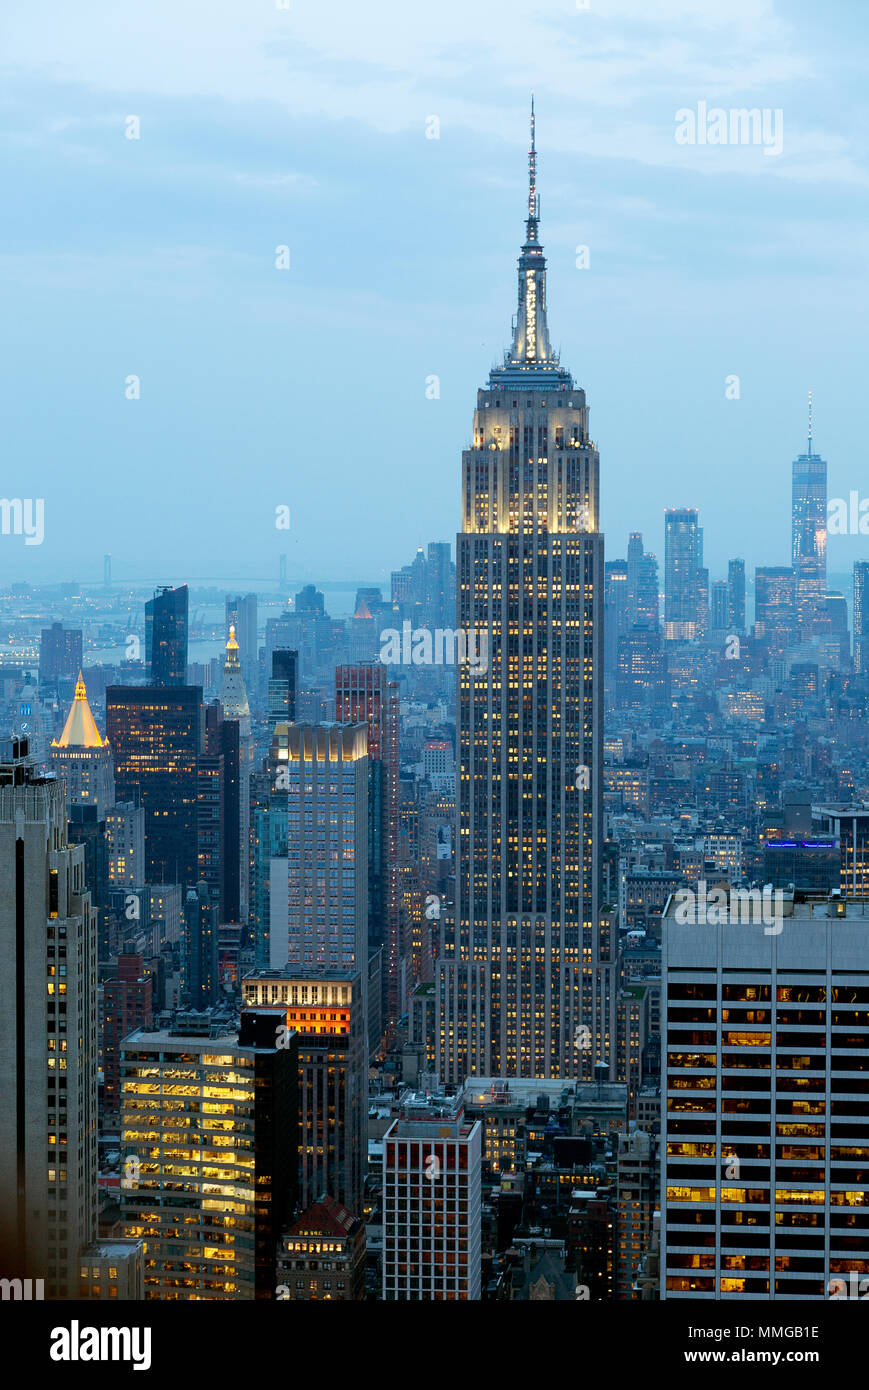 L'Empire State Building et toits de New York dans la soirée vu du haut de la roche, New York city Etats-unis d'Amérique Photo Stock